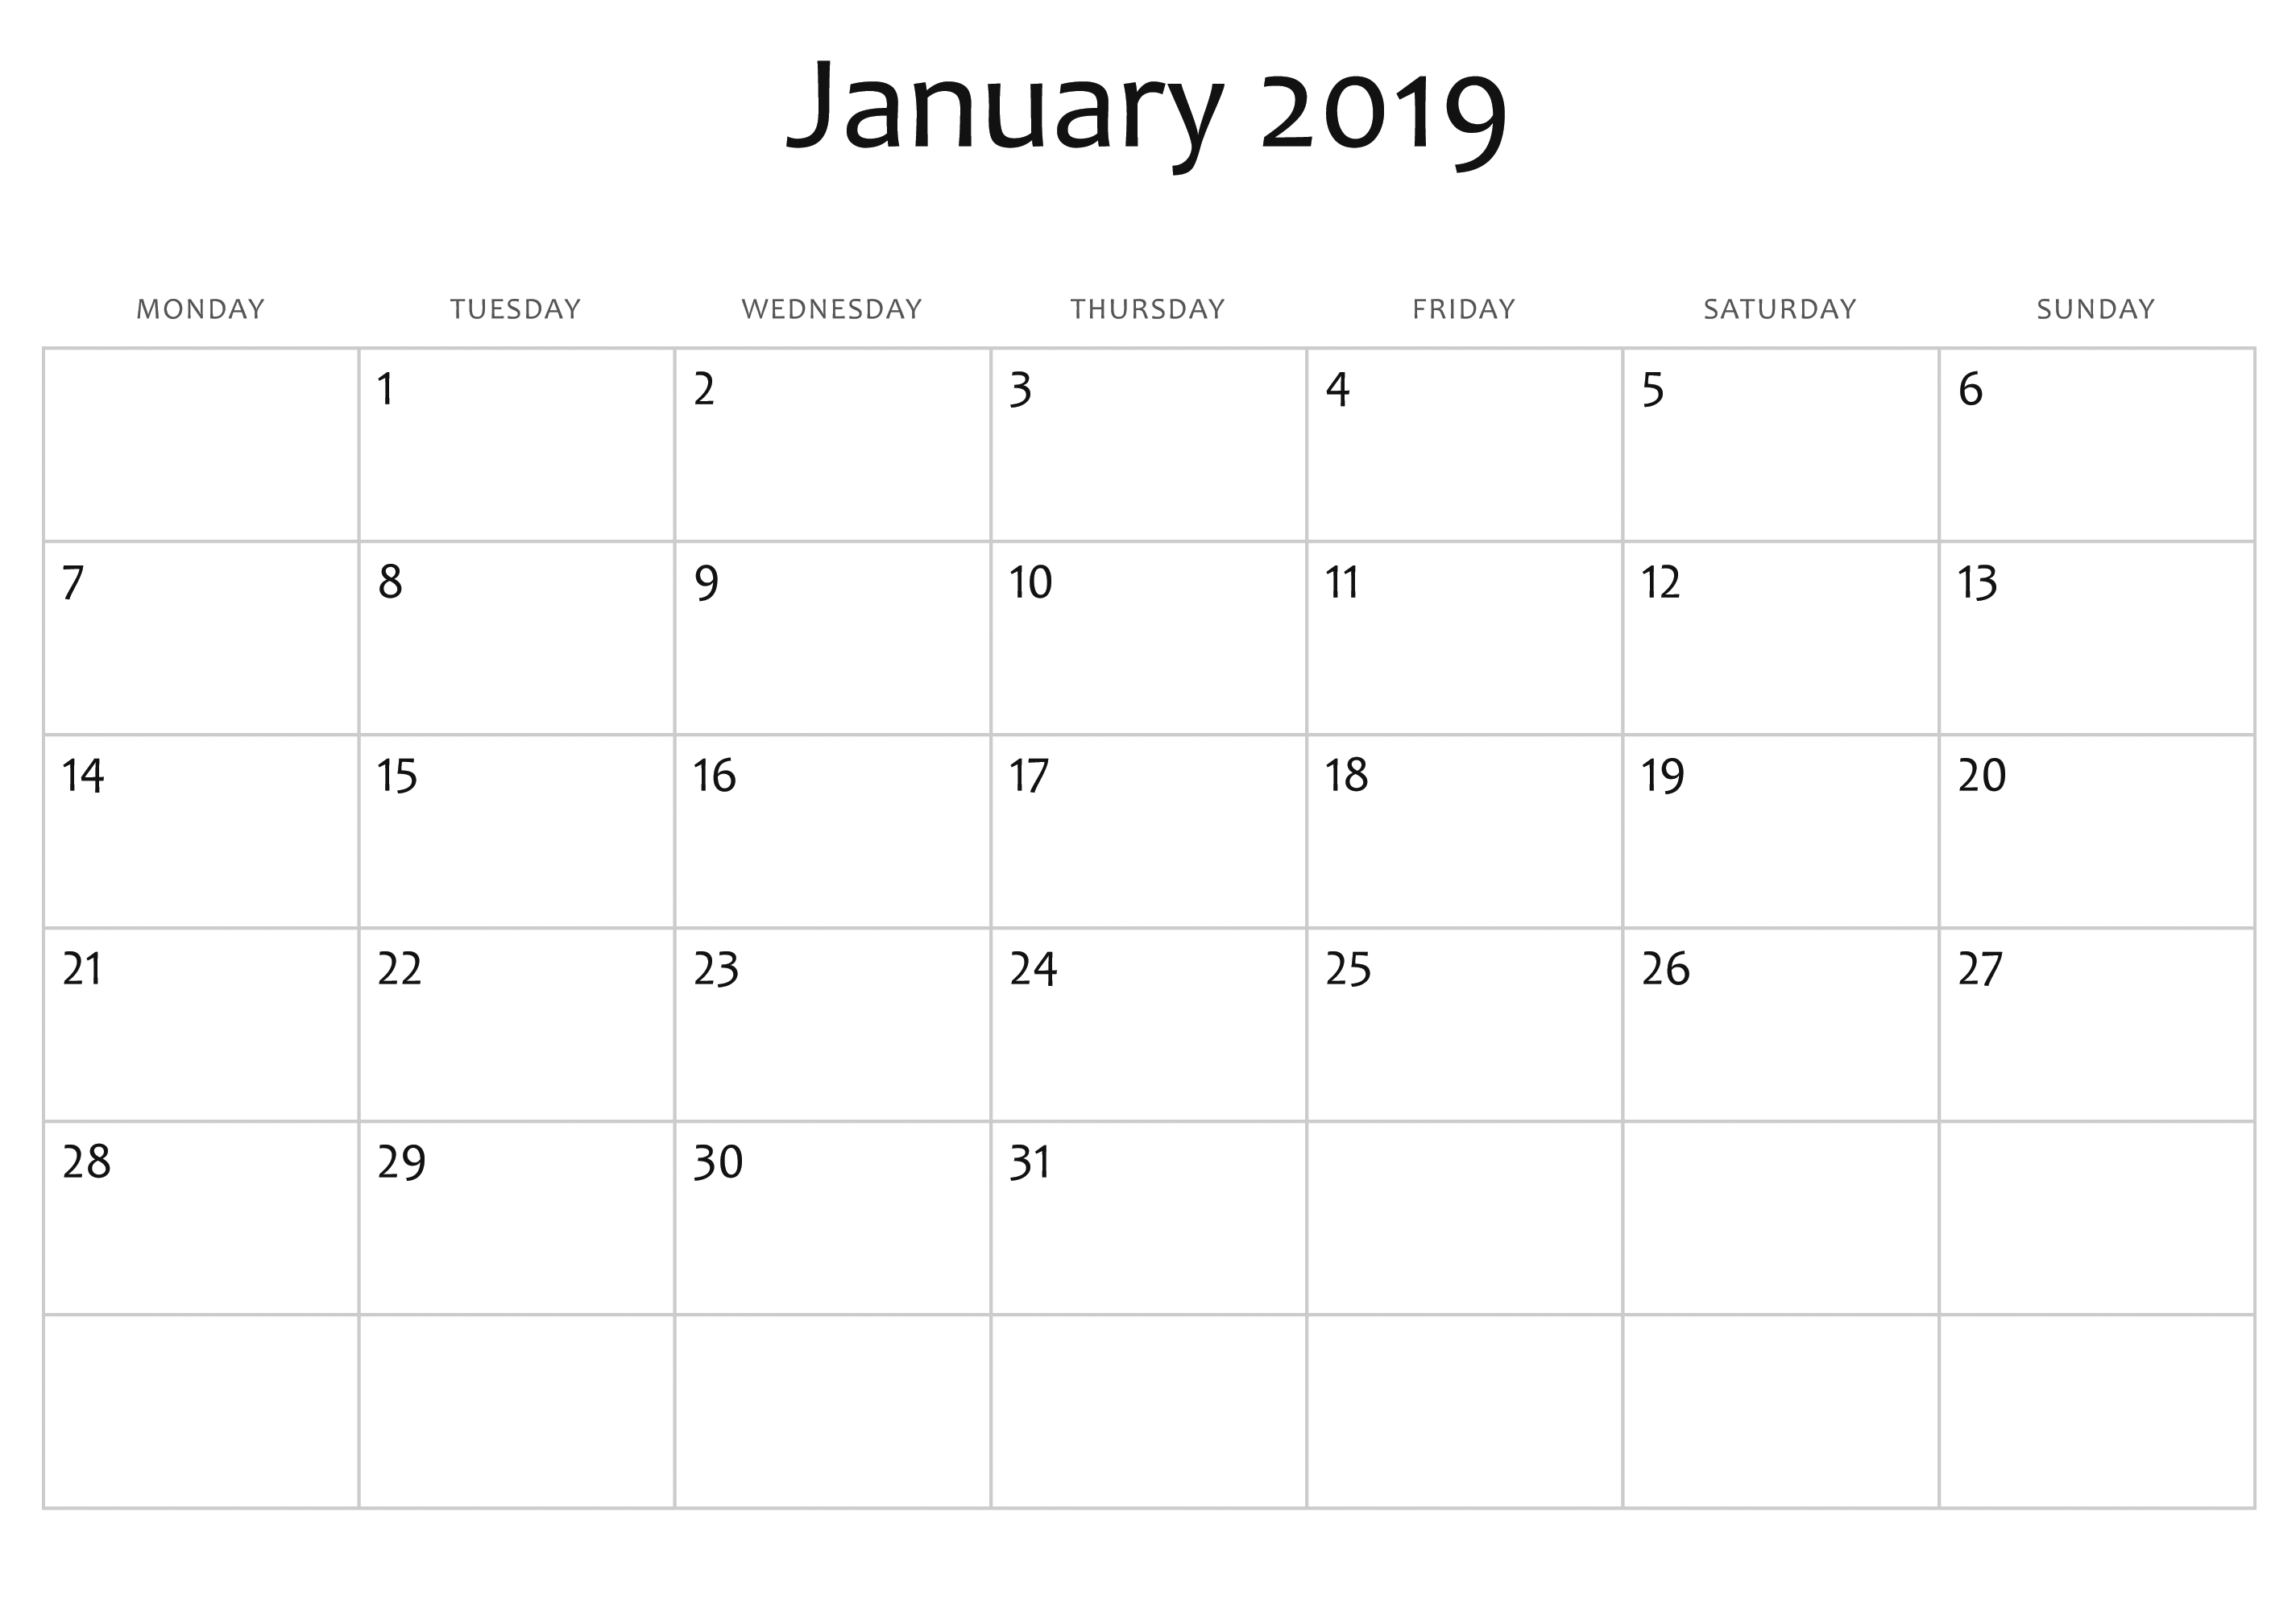 January 2019 Calendar Design By Month